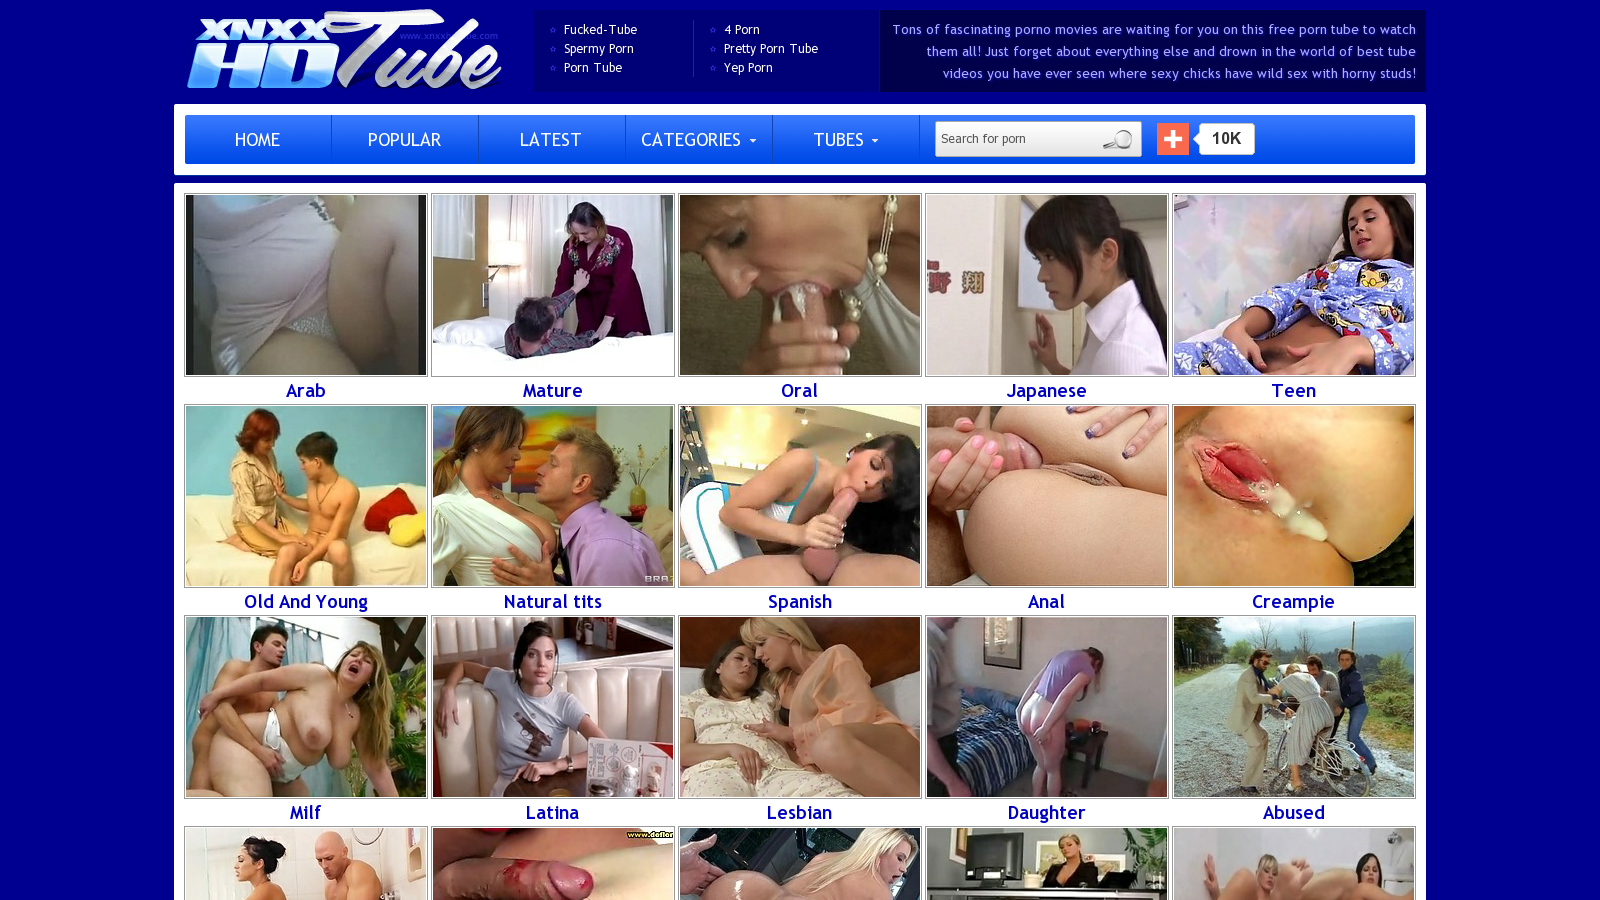 sites like xnxx